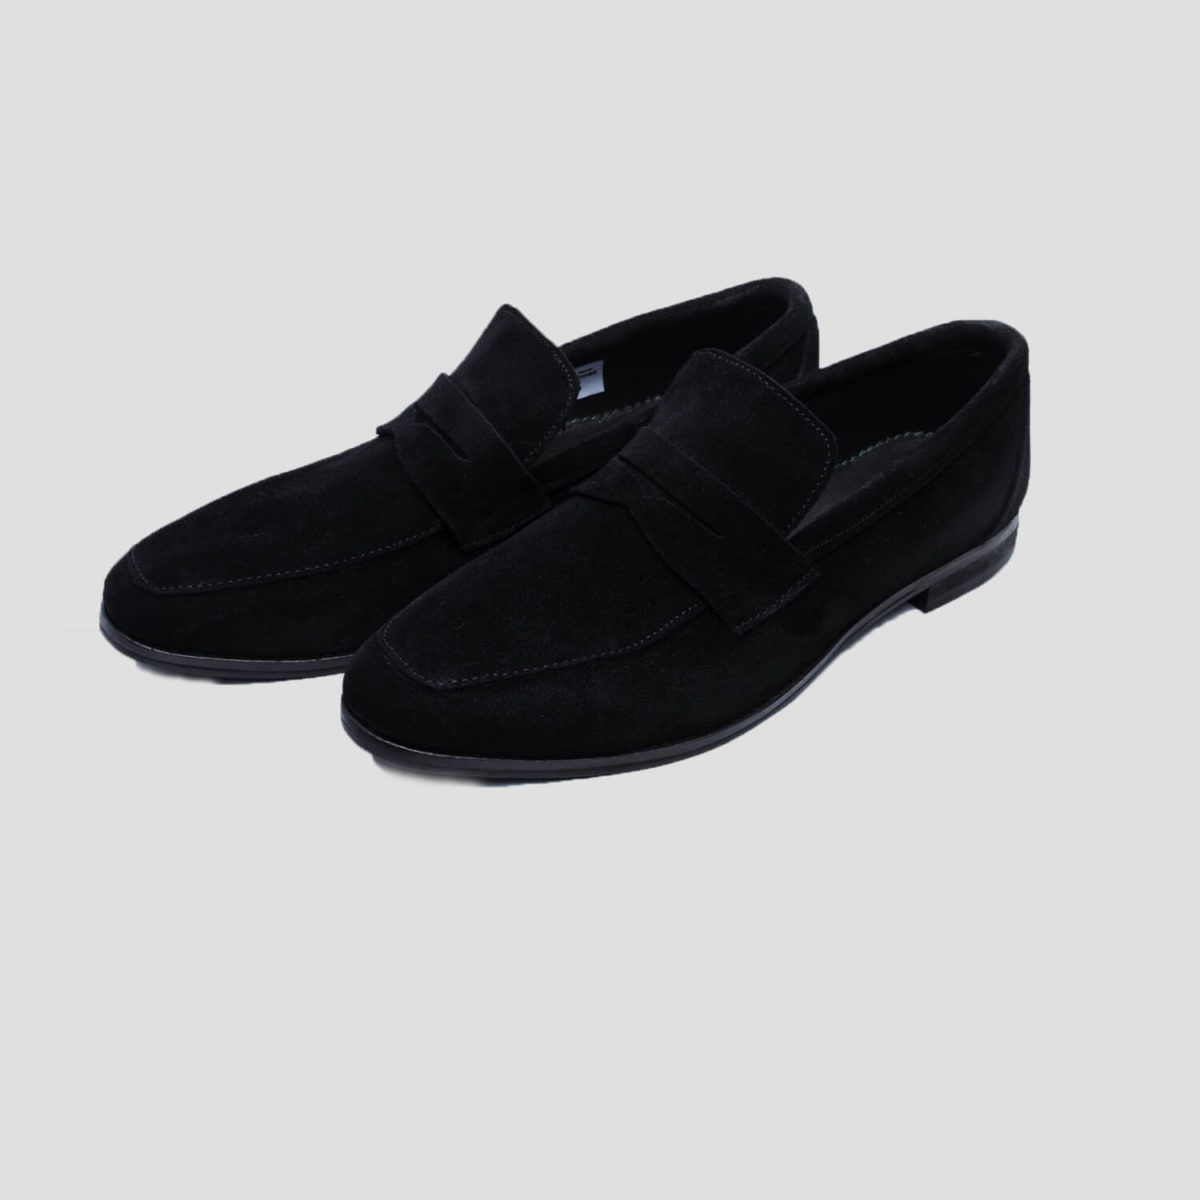 penny loafers black suede zorkle shoes lagos nigeria